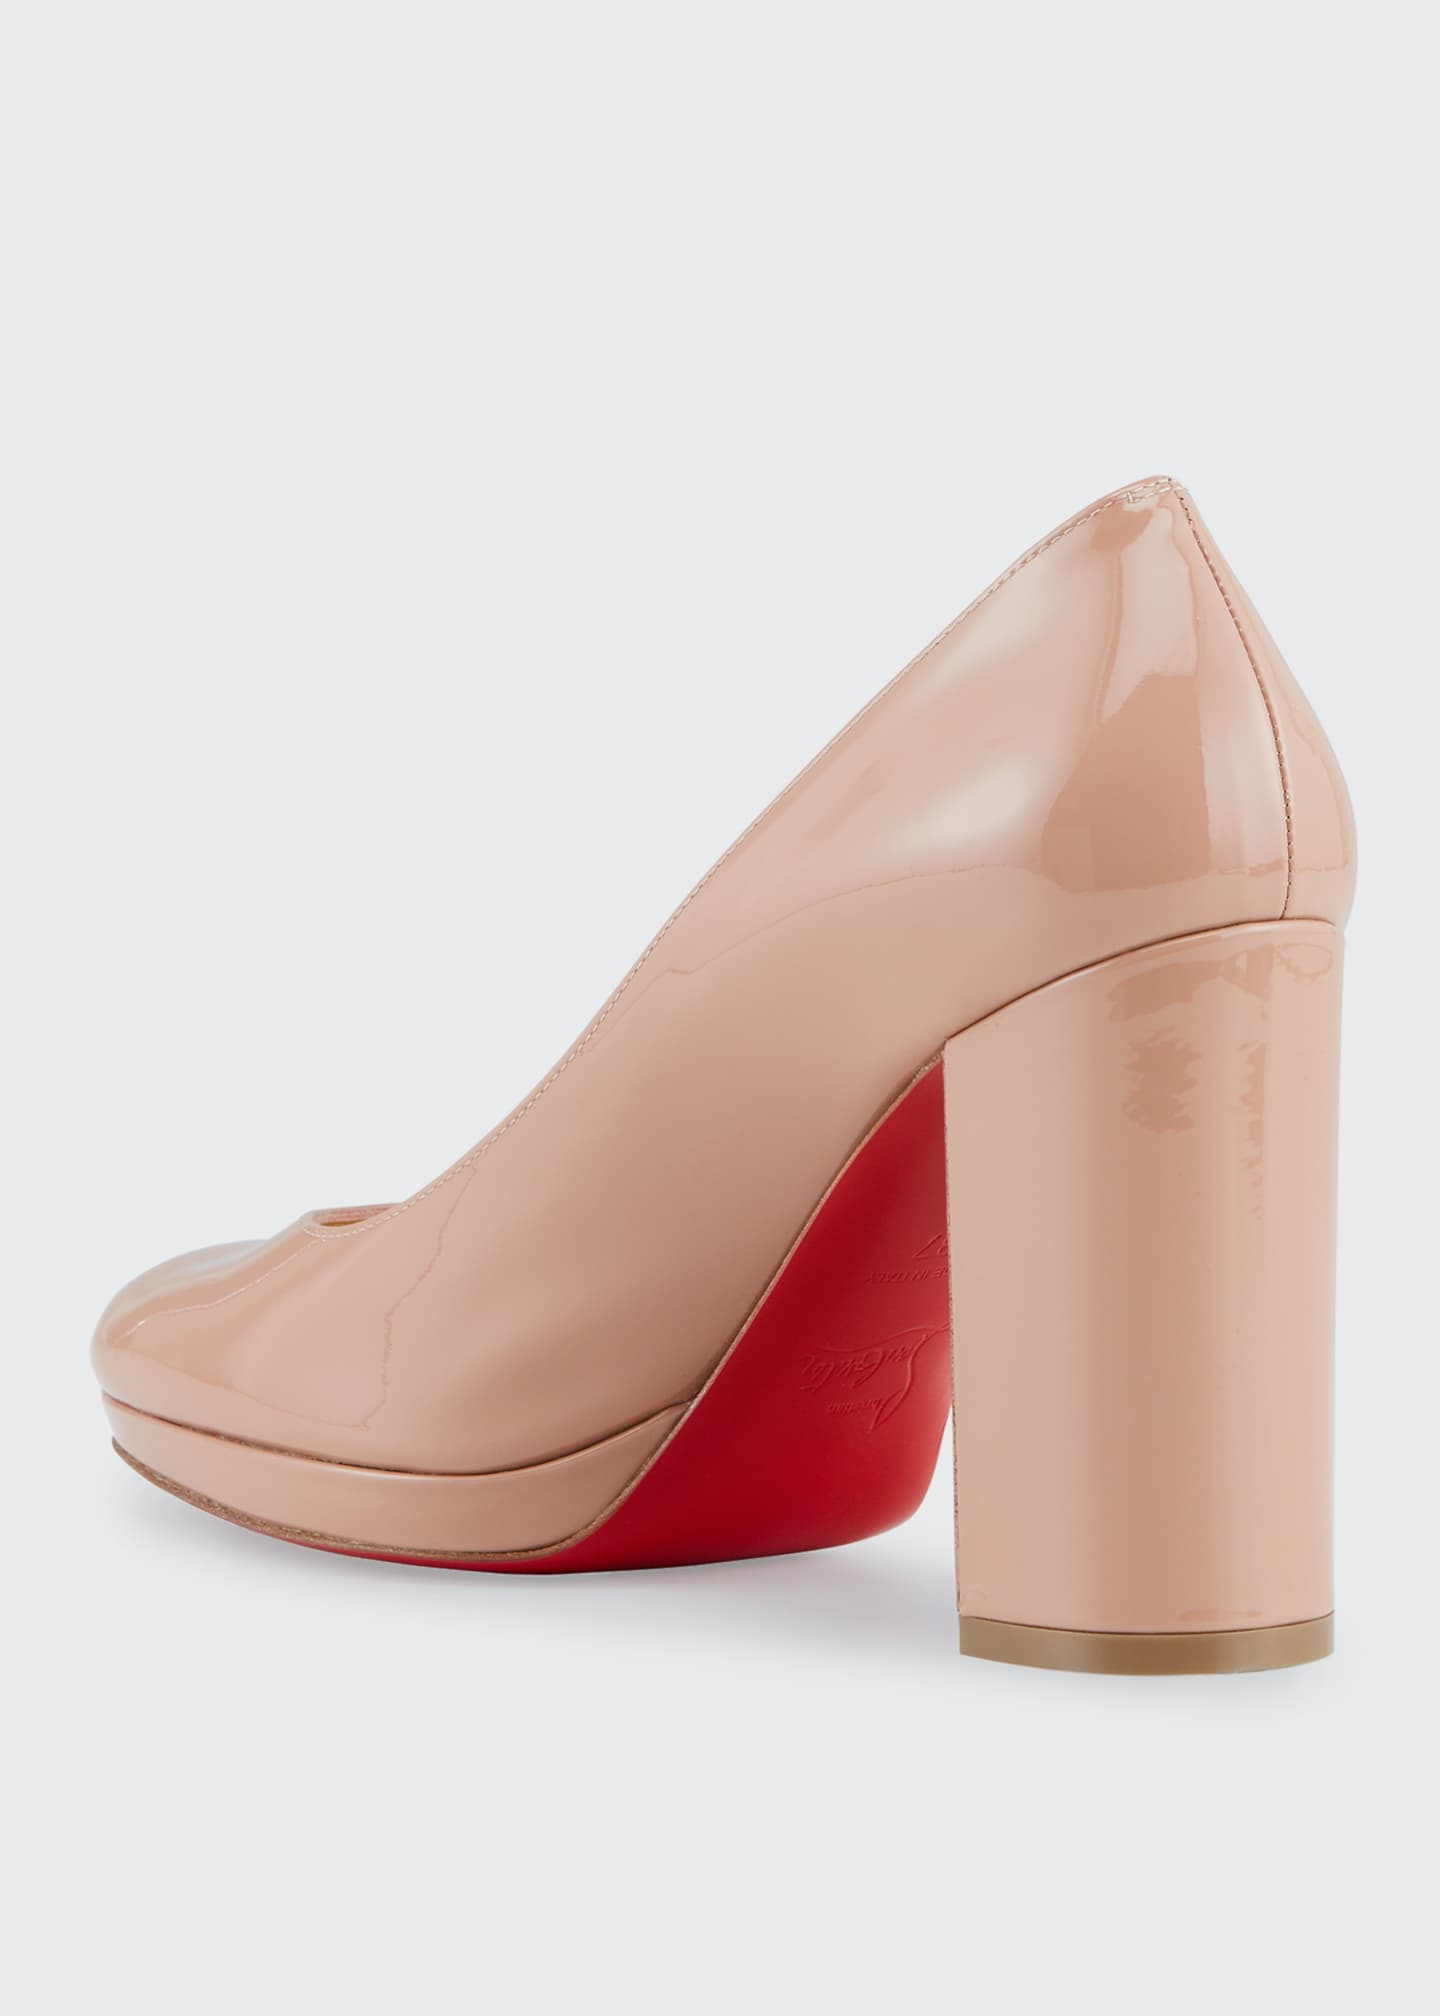 Image 3 of 4: Kabetts Patent Red Sole Pumps